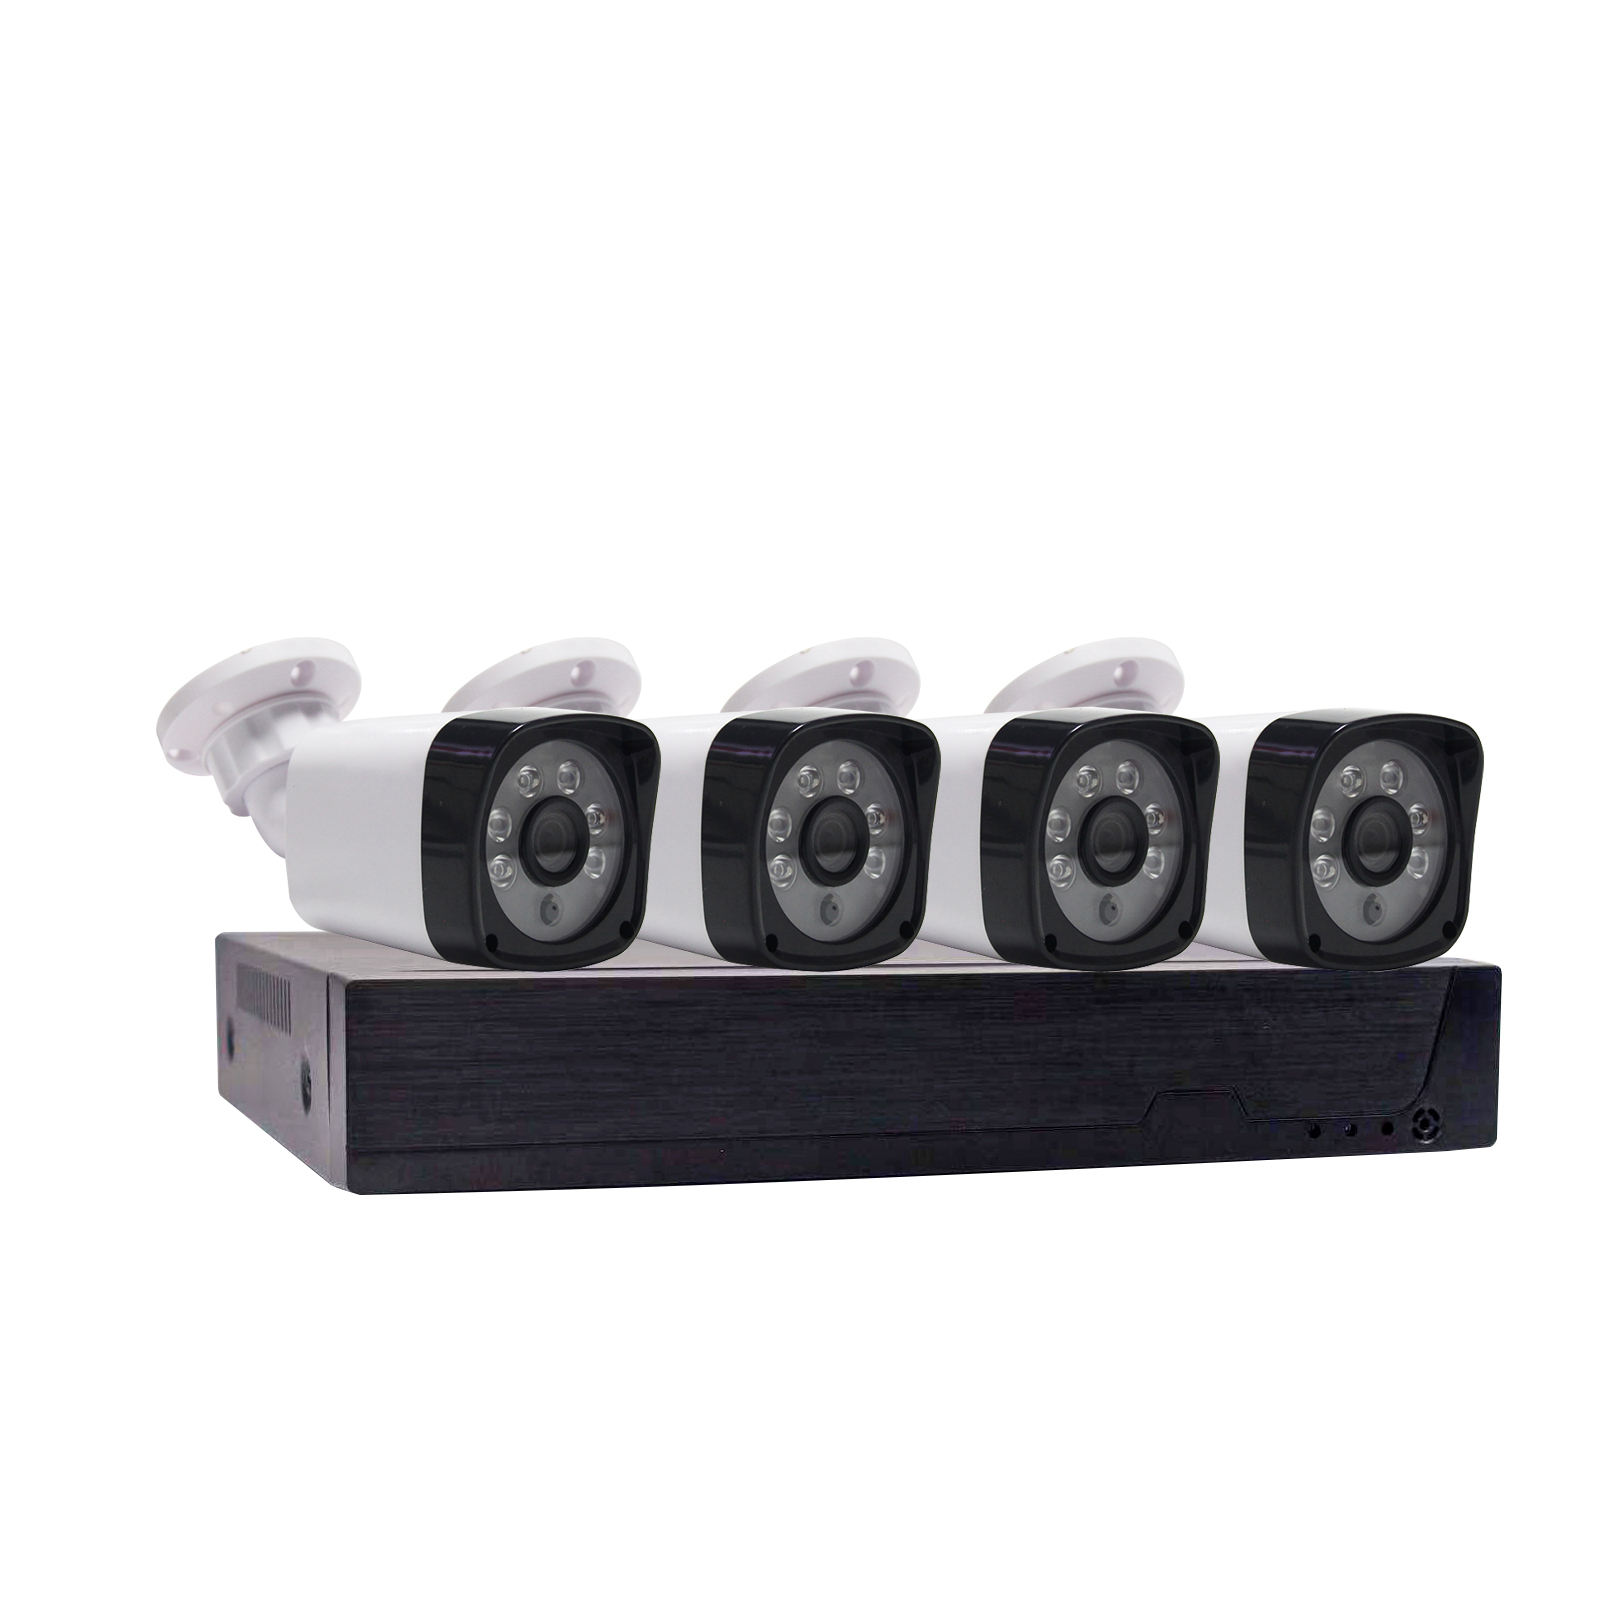 Boshen top 10 profesional DIY smart home video überwachung hd 4ch 1080n 4 in 1 DVR kit outdoor 1080p <span class=keywords><strong>cctv</strong></span> <span class=keywords><strong>kamera</strong></span>